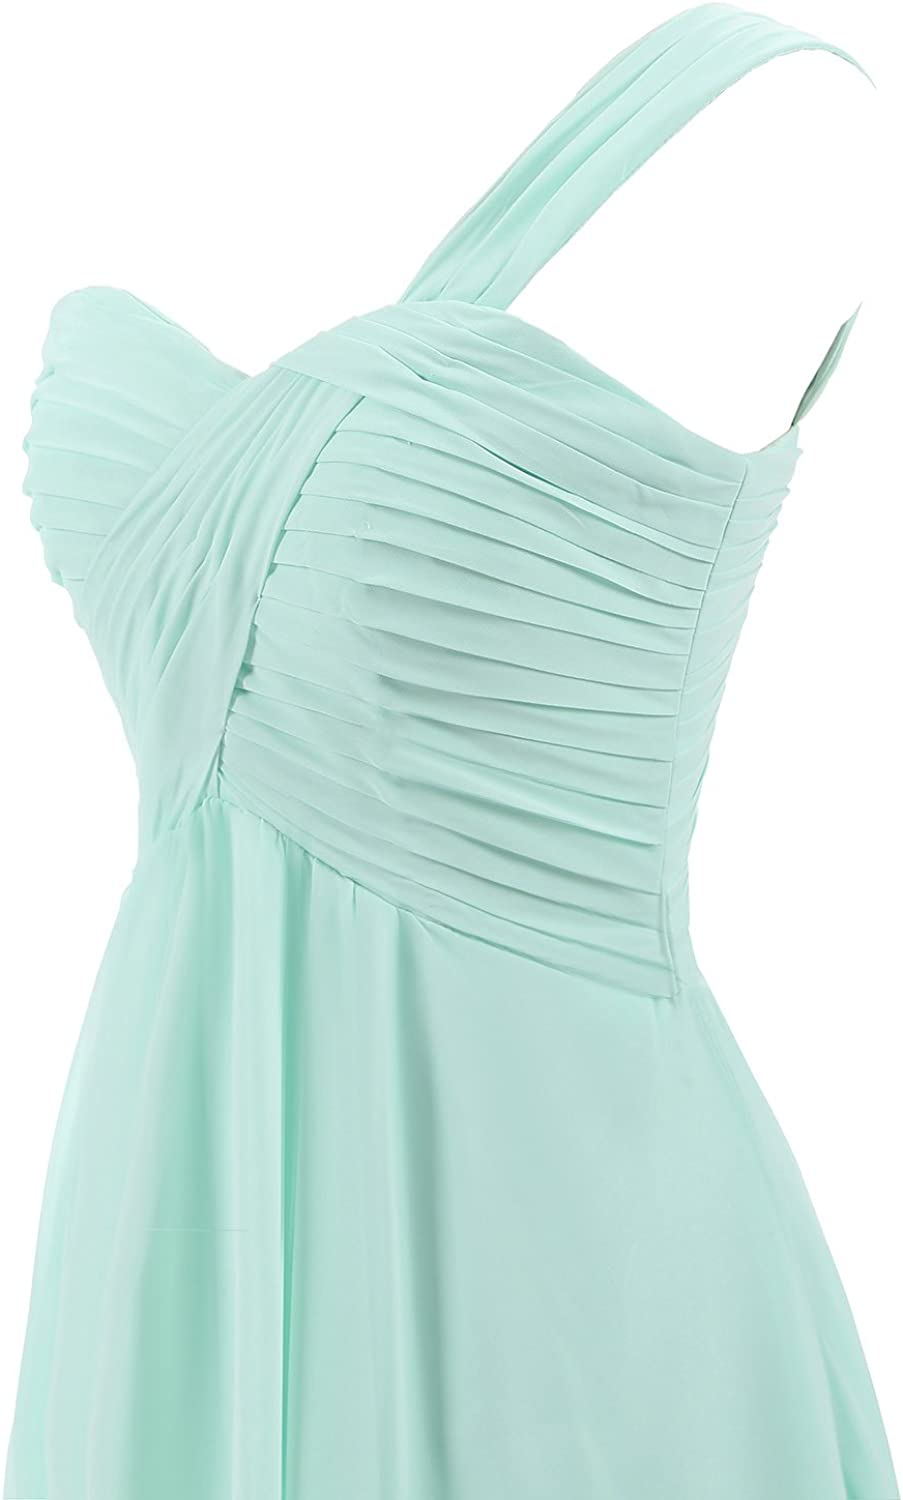 Clearbridal Women's Vintage A-line Short Prom Party Gowns Chiffon Bridesmaid Dress CSD247 Offe White-427